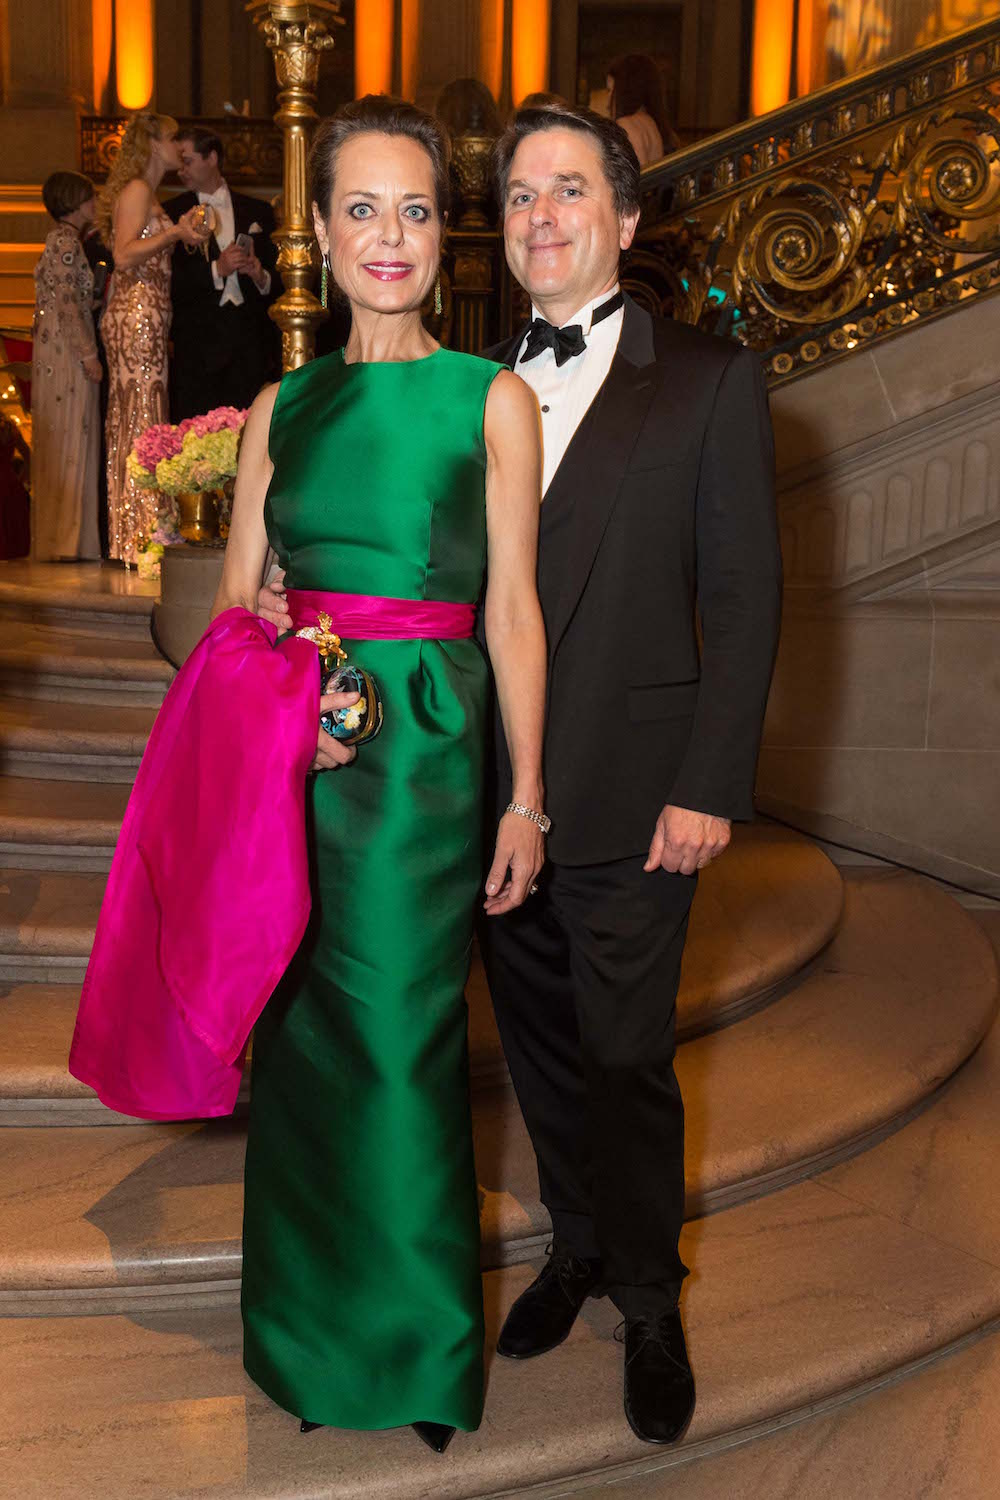 Charlot Malin and her husband, Gregory Malin, at the San Francisco Ballet Opening Night Gala in January